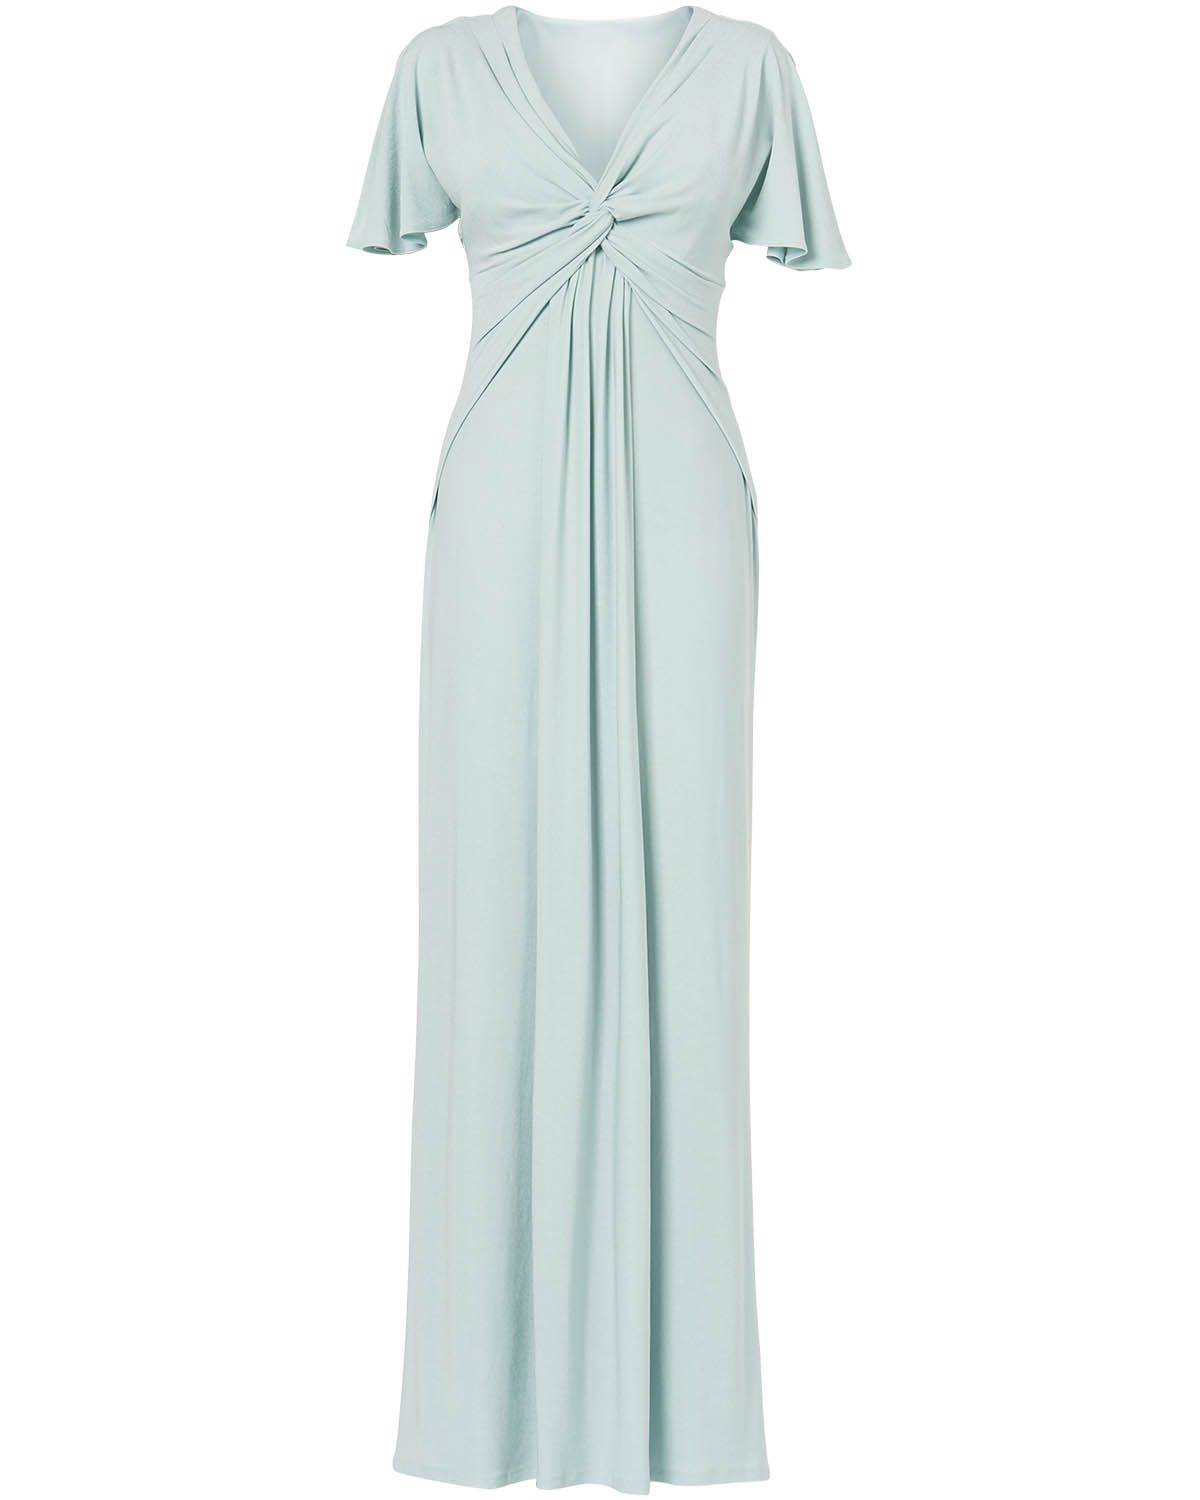 Bridesmaid Dresses | Blue Claudia Maxi Dress | Phase Eight